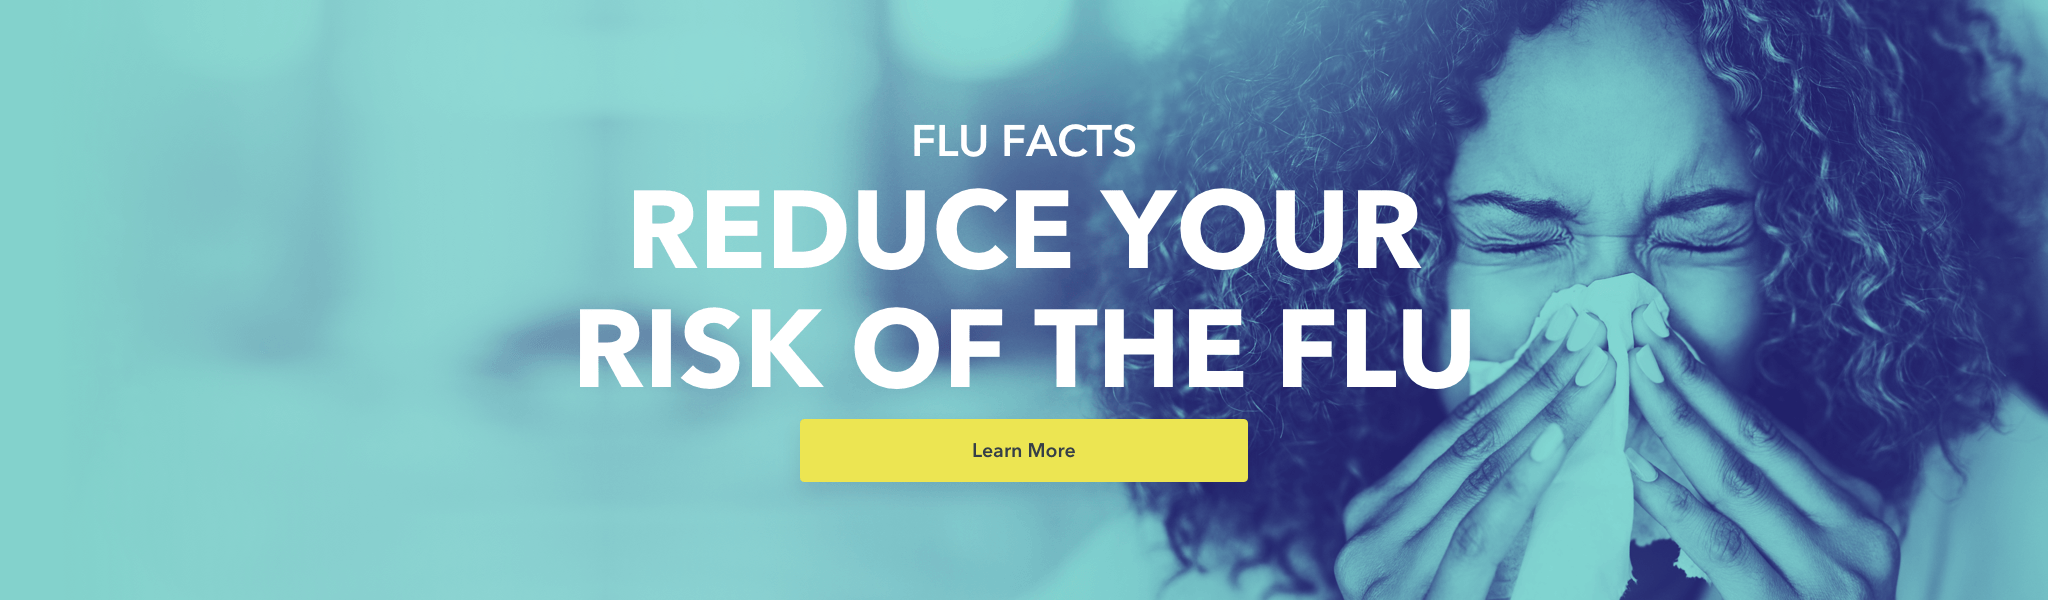 Reduce your risk of the flu